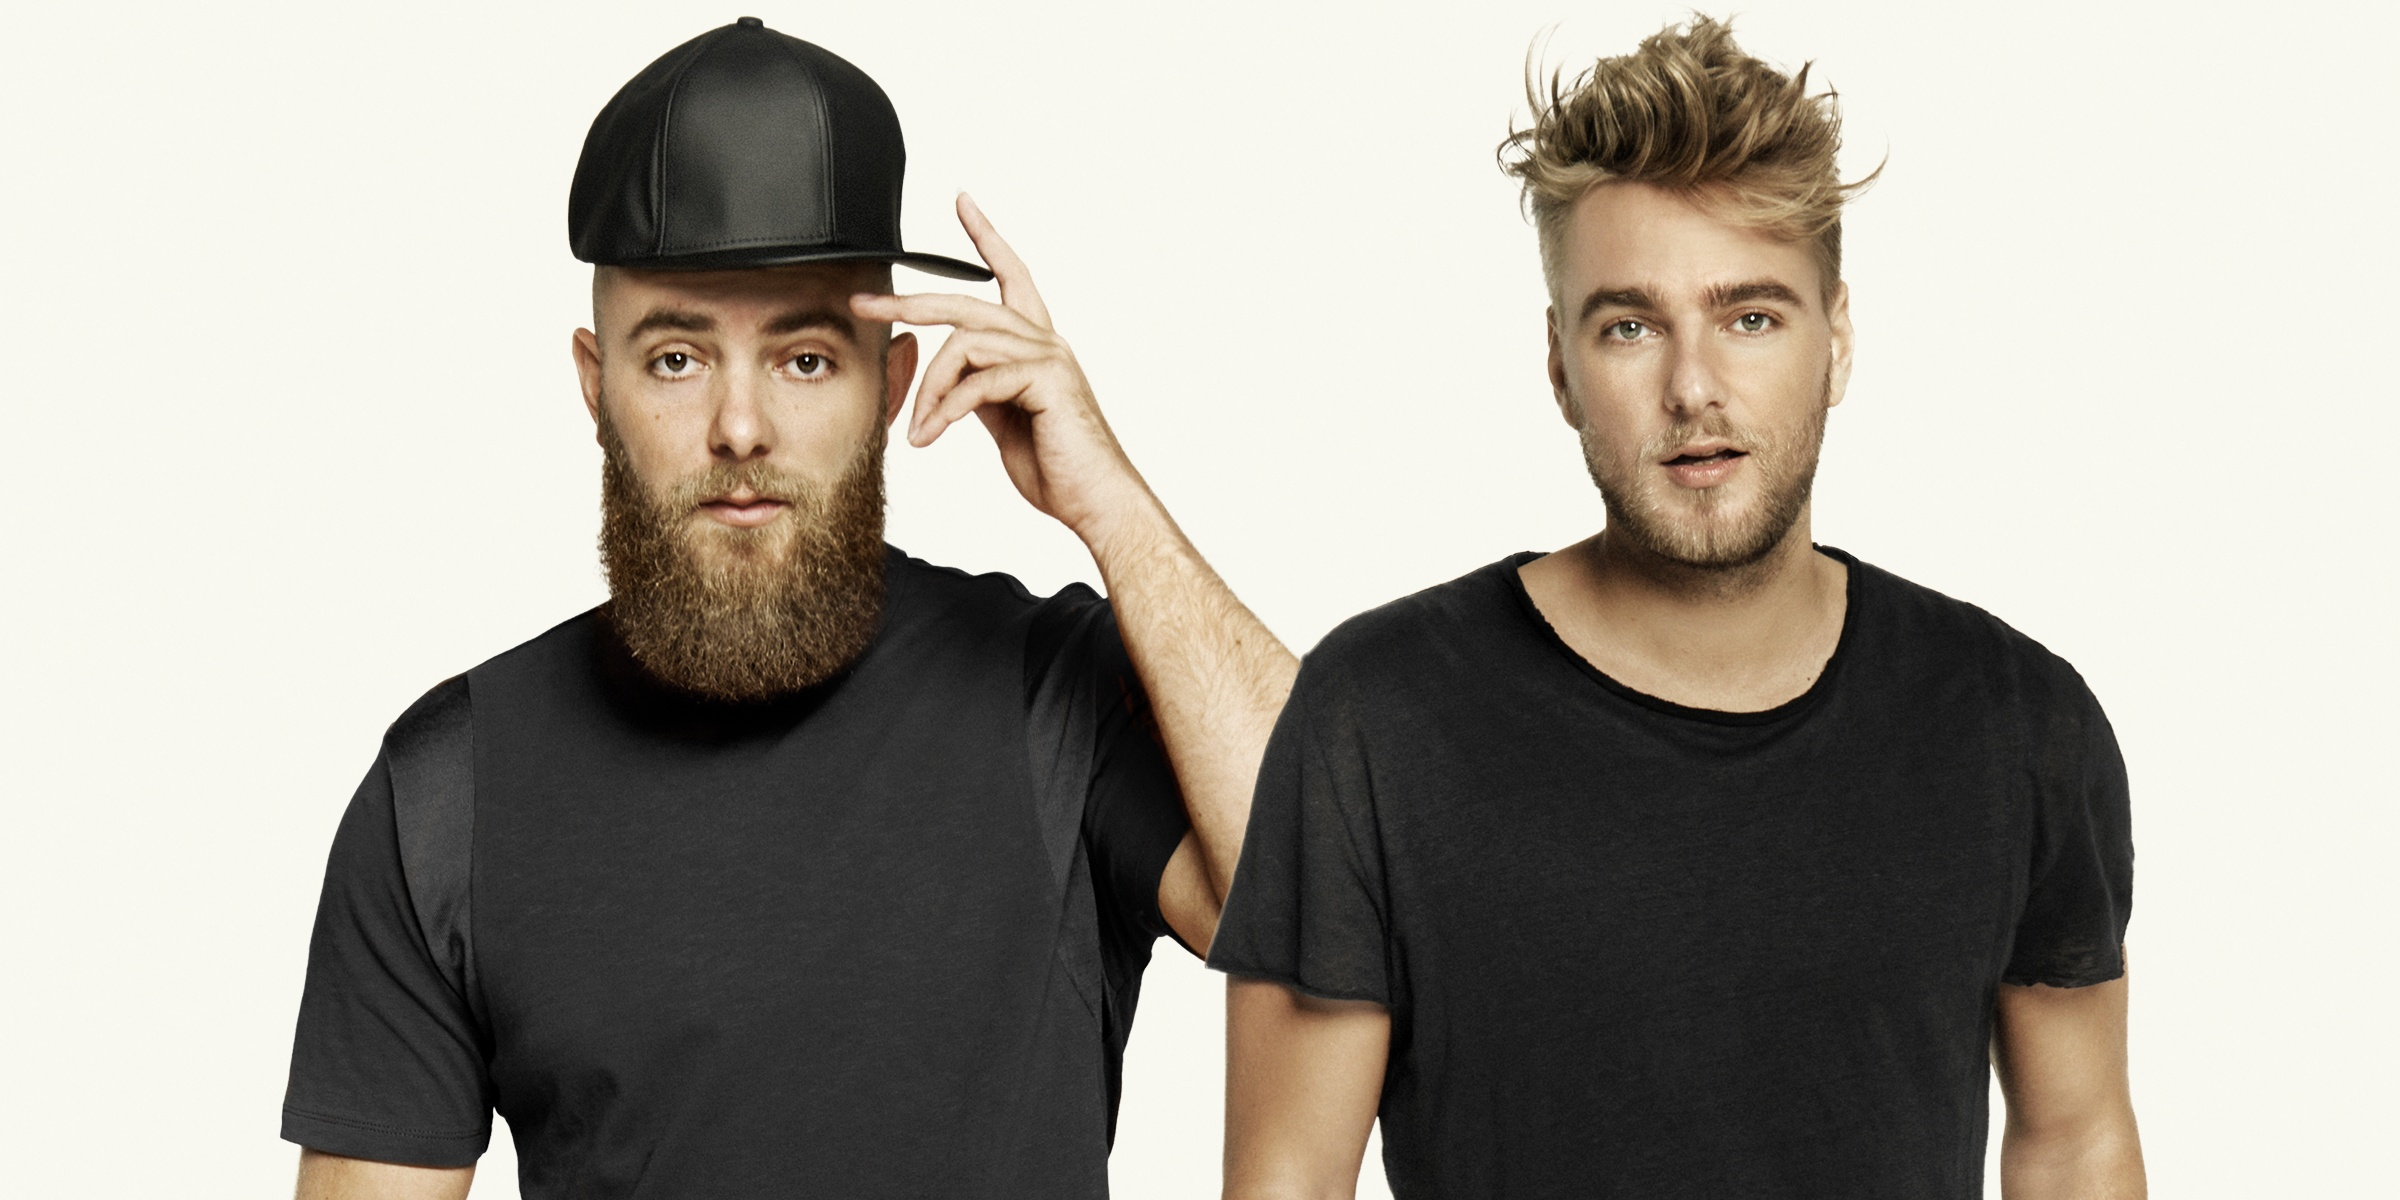 """I think we've done pretty well so far"": An interview with Showtek"